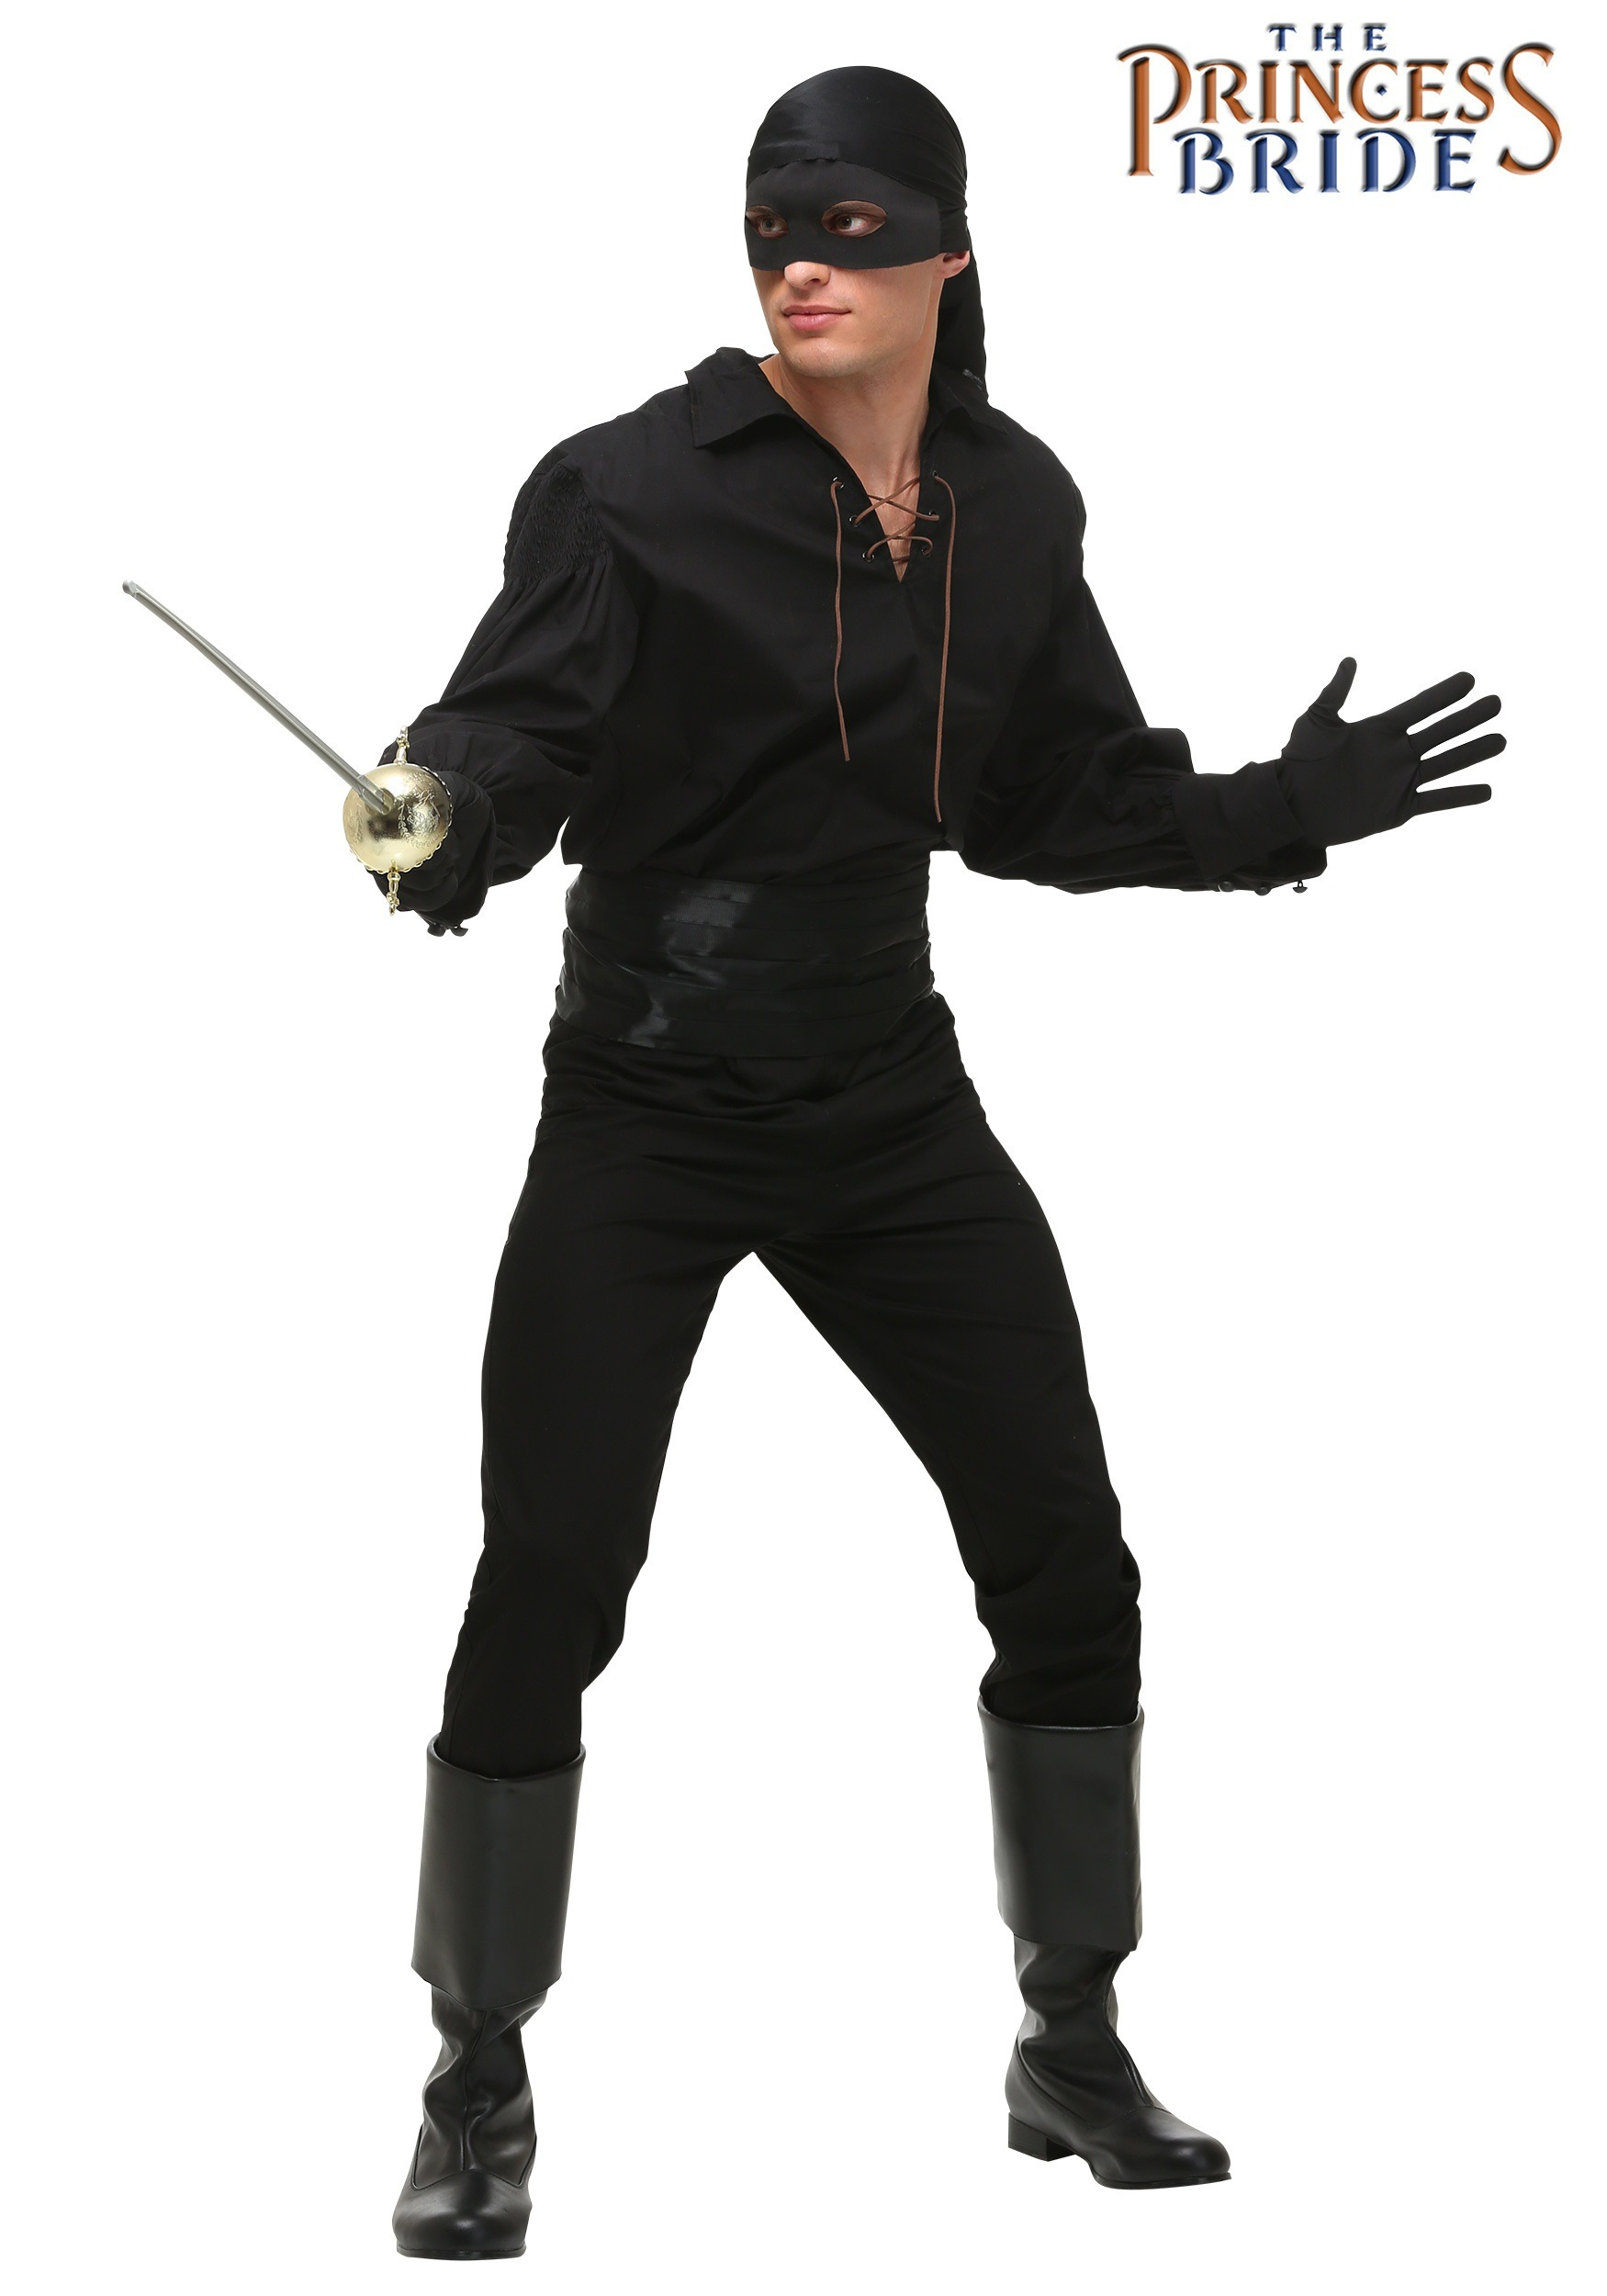 Dread Pirate Roberts Costume Princess Bride Westley Pirate Outfit Man in Black